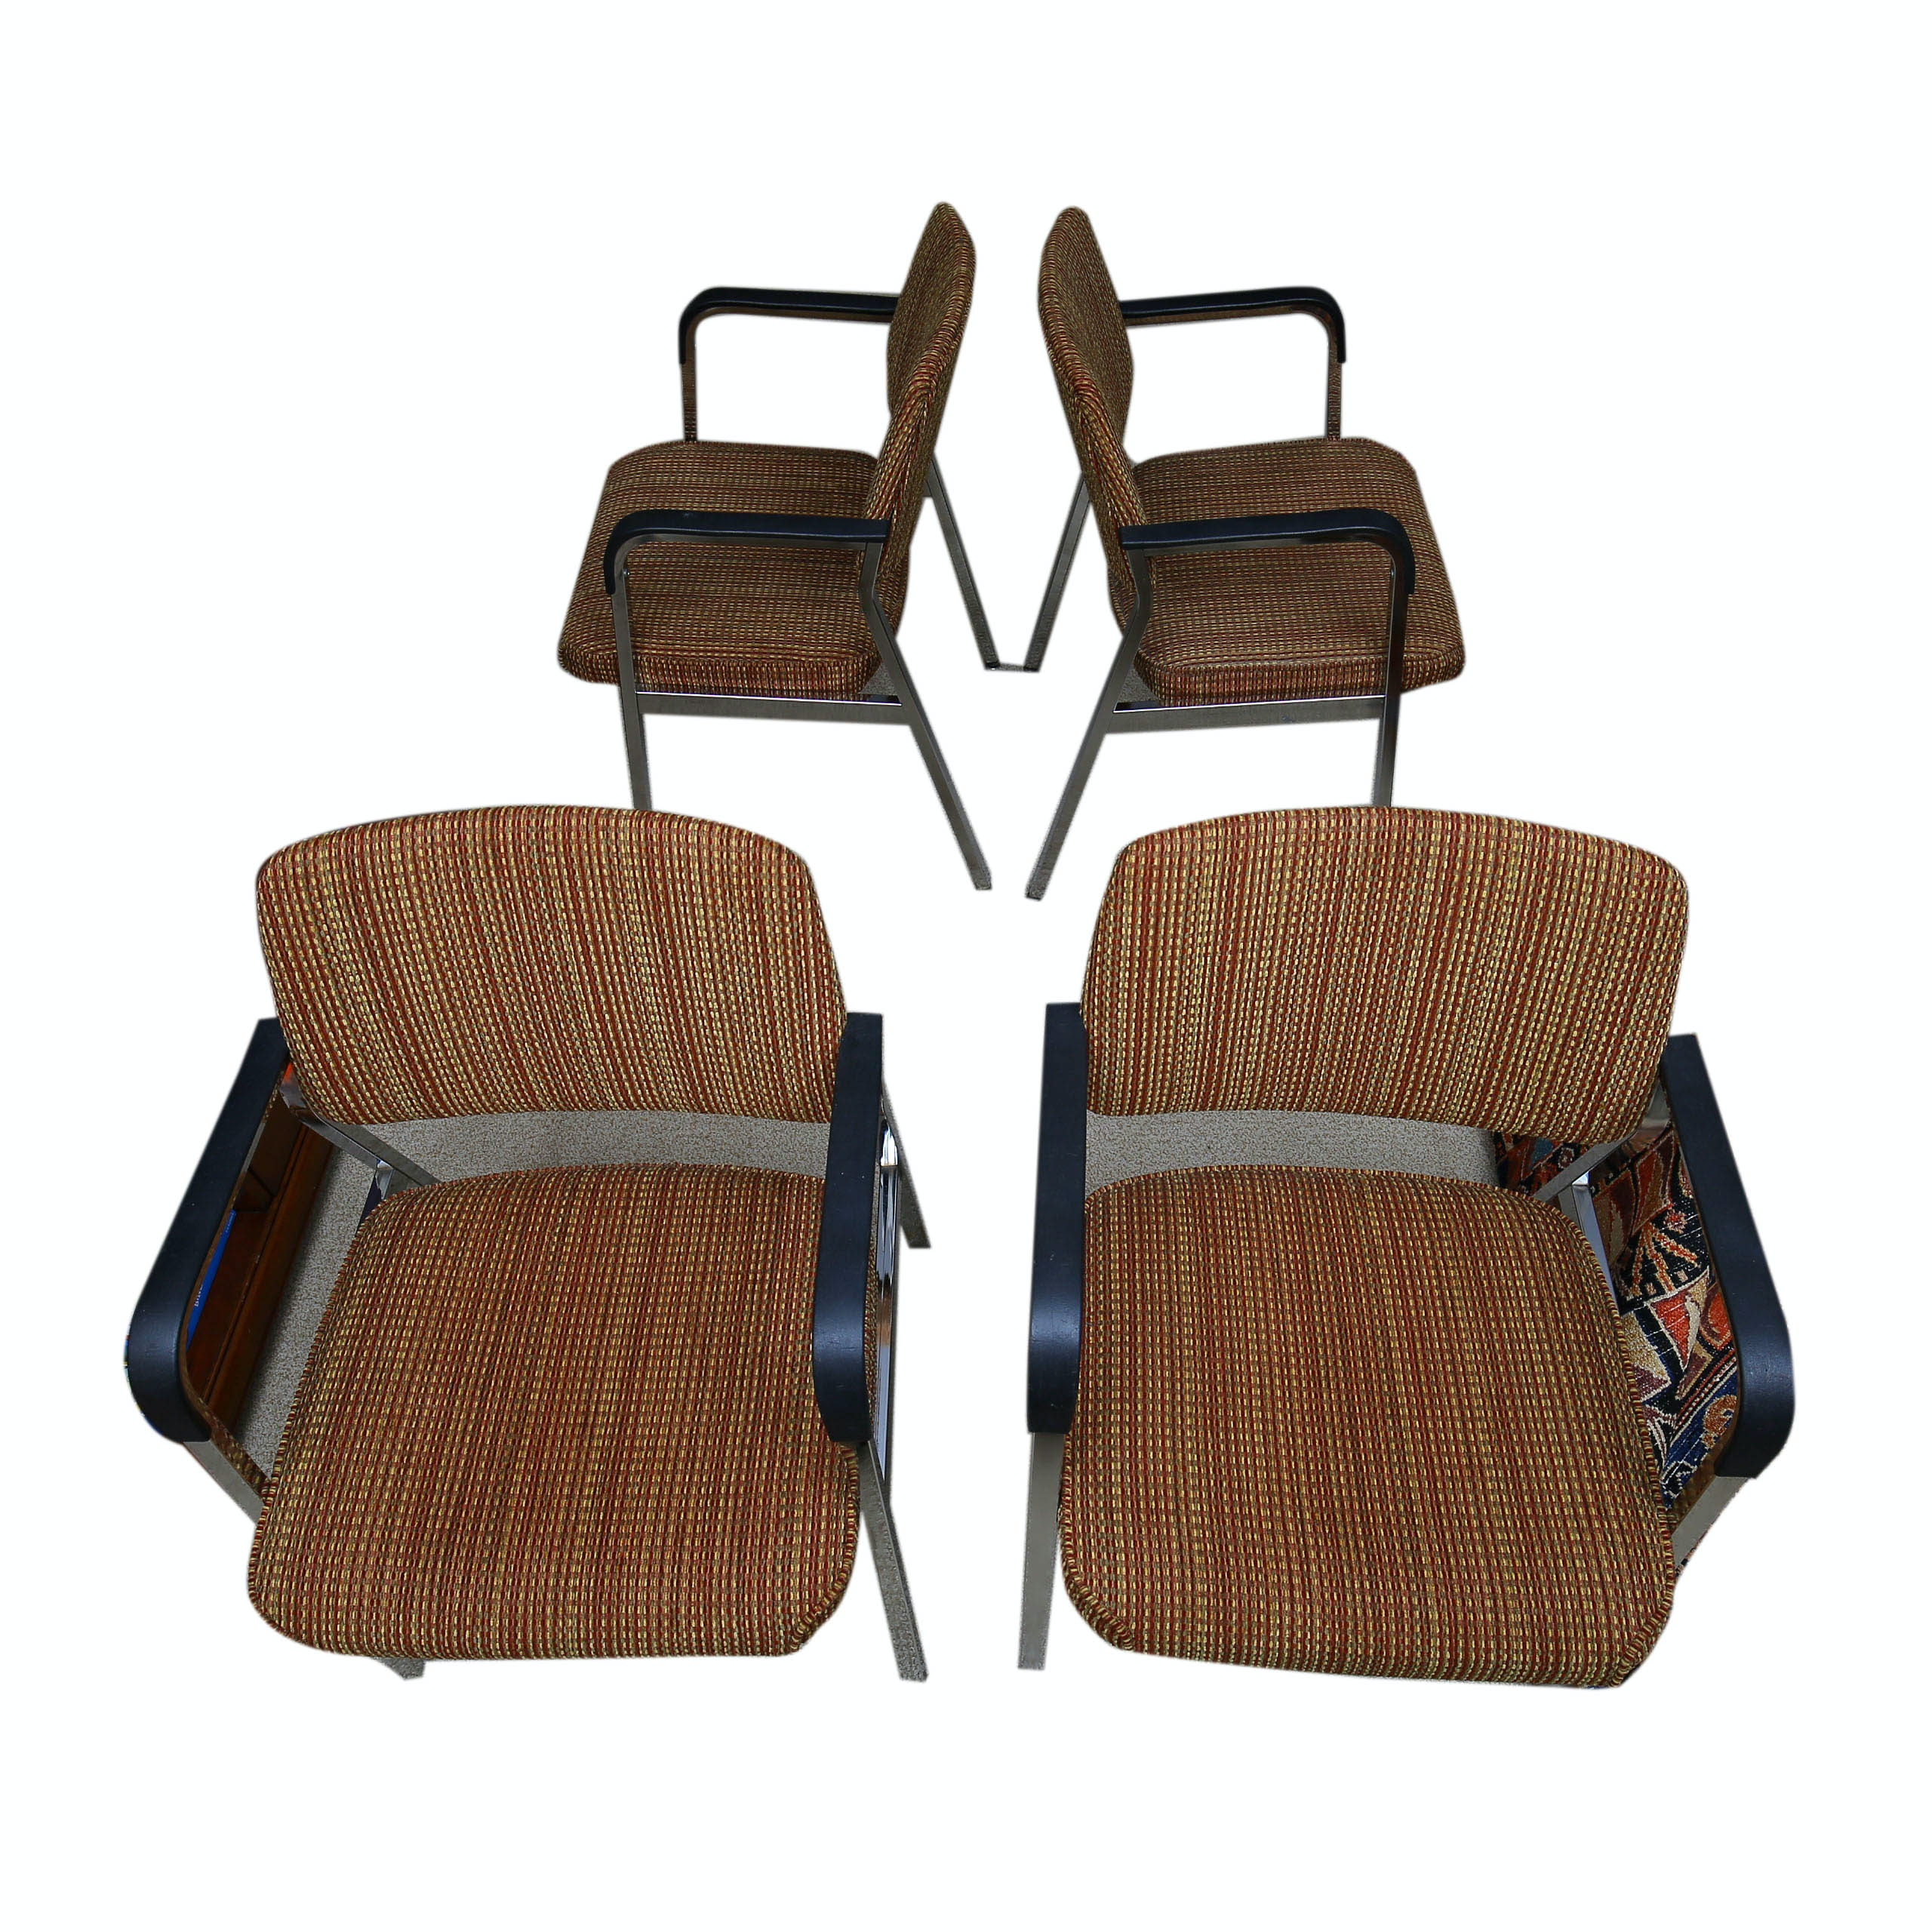 Contemporary Upholstered Metal Chairs